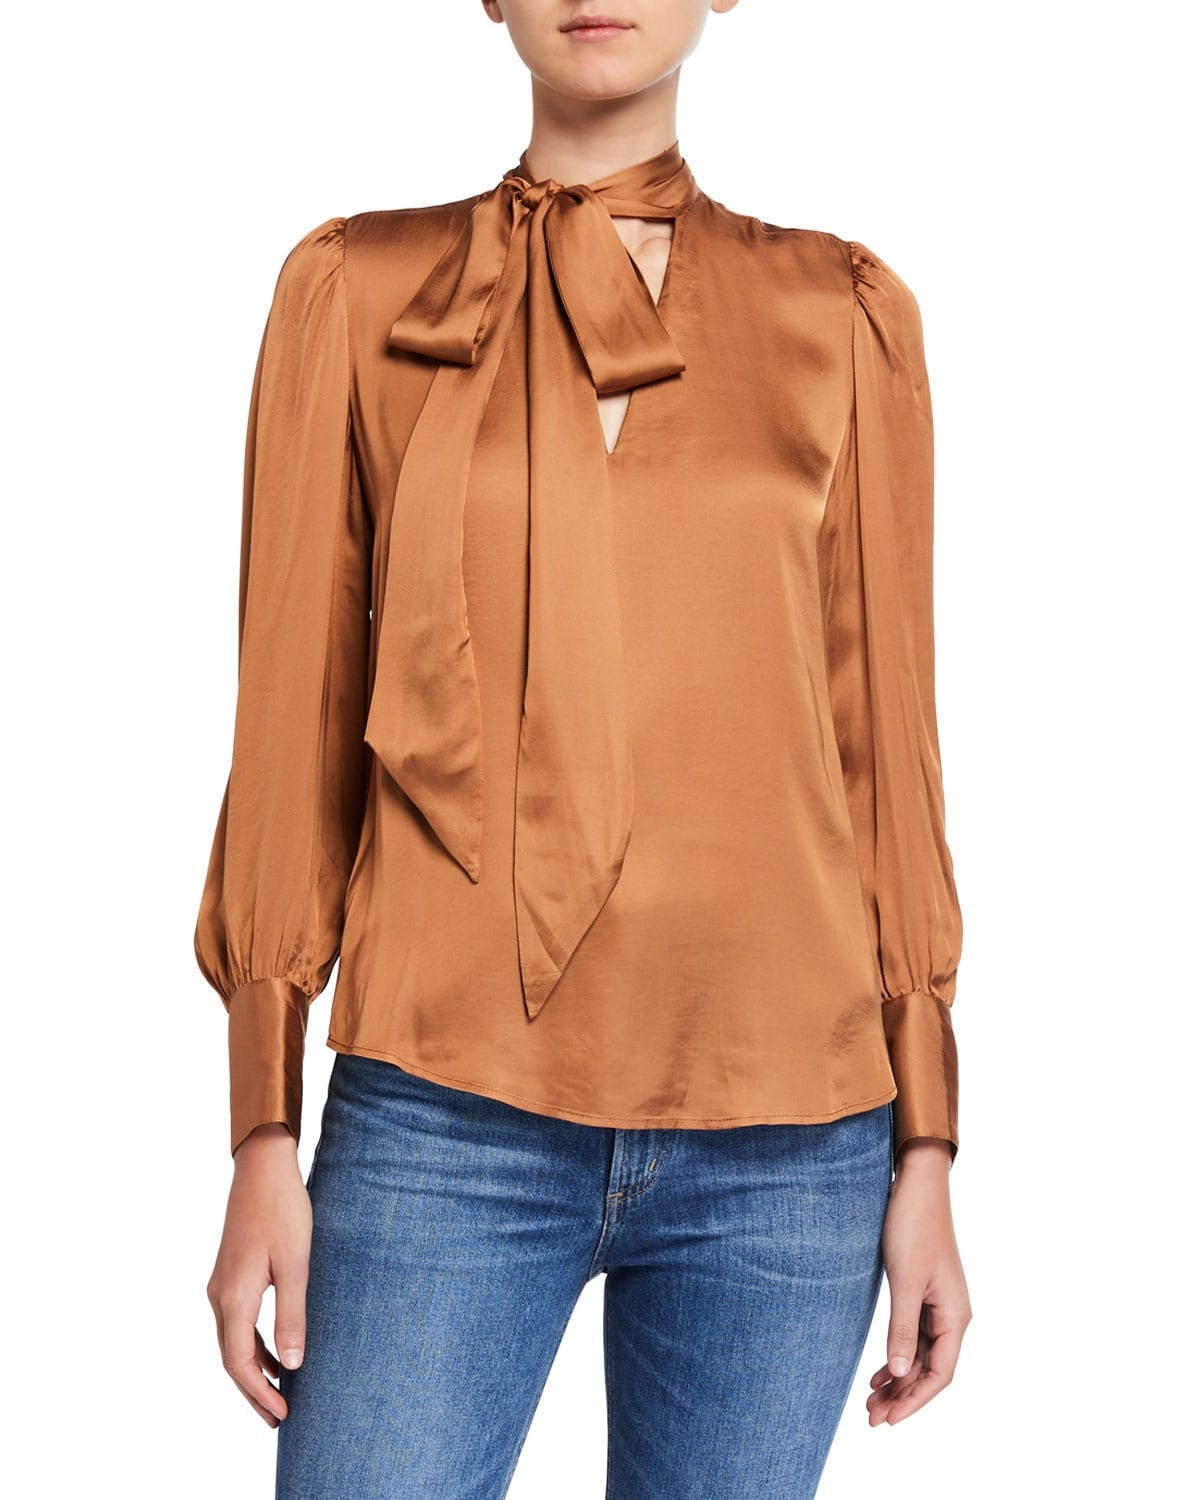 Tonal Dressing, 7 for all mankind satin tie neck blouse in camel brown